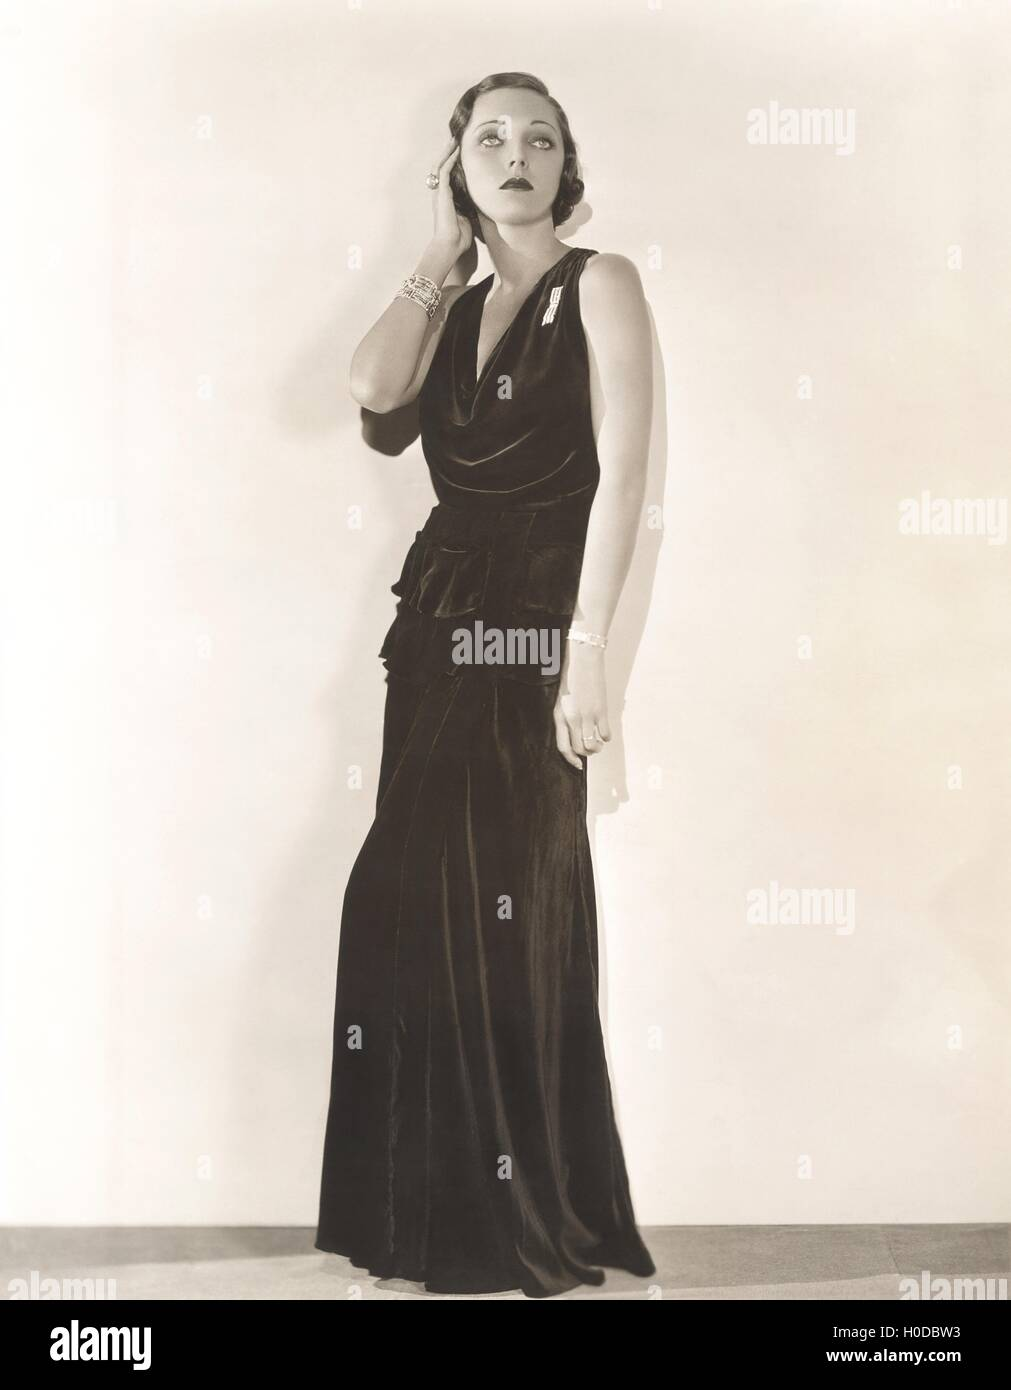 1910s 1940s, Gown Stock Photos & 1910s 1940s, Gown Stock Images - Alamy